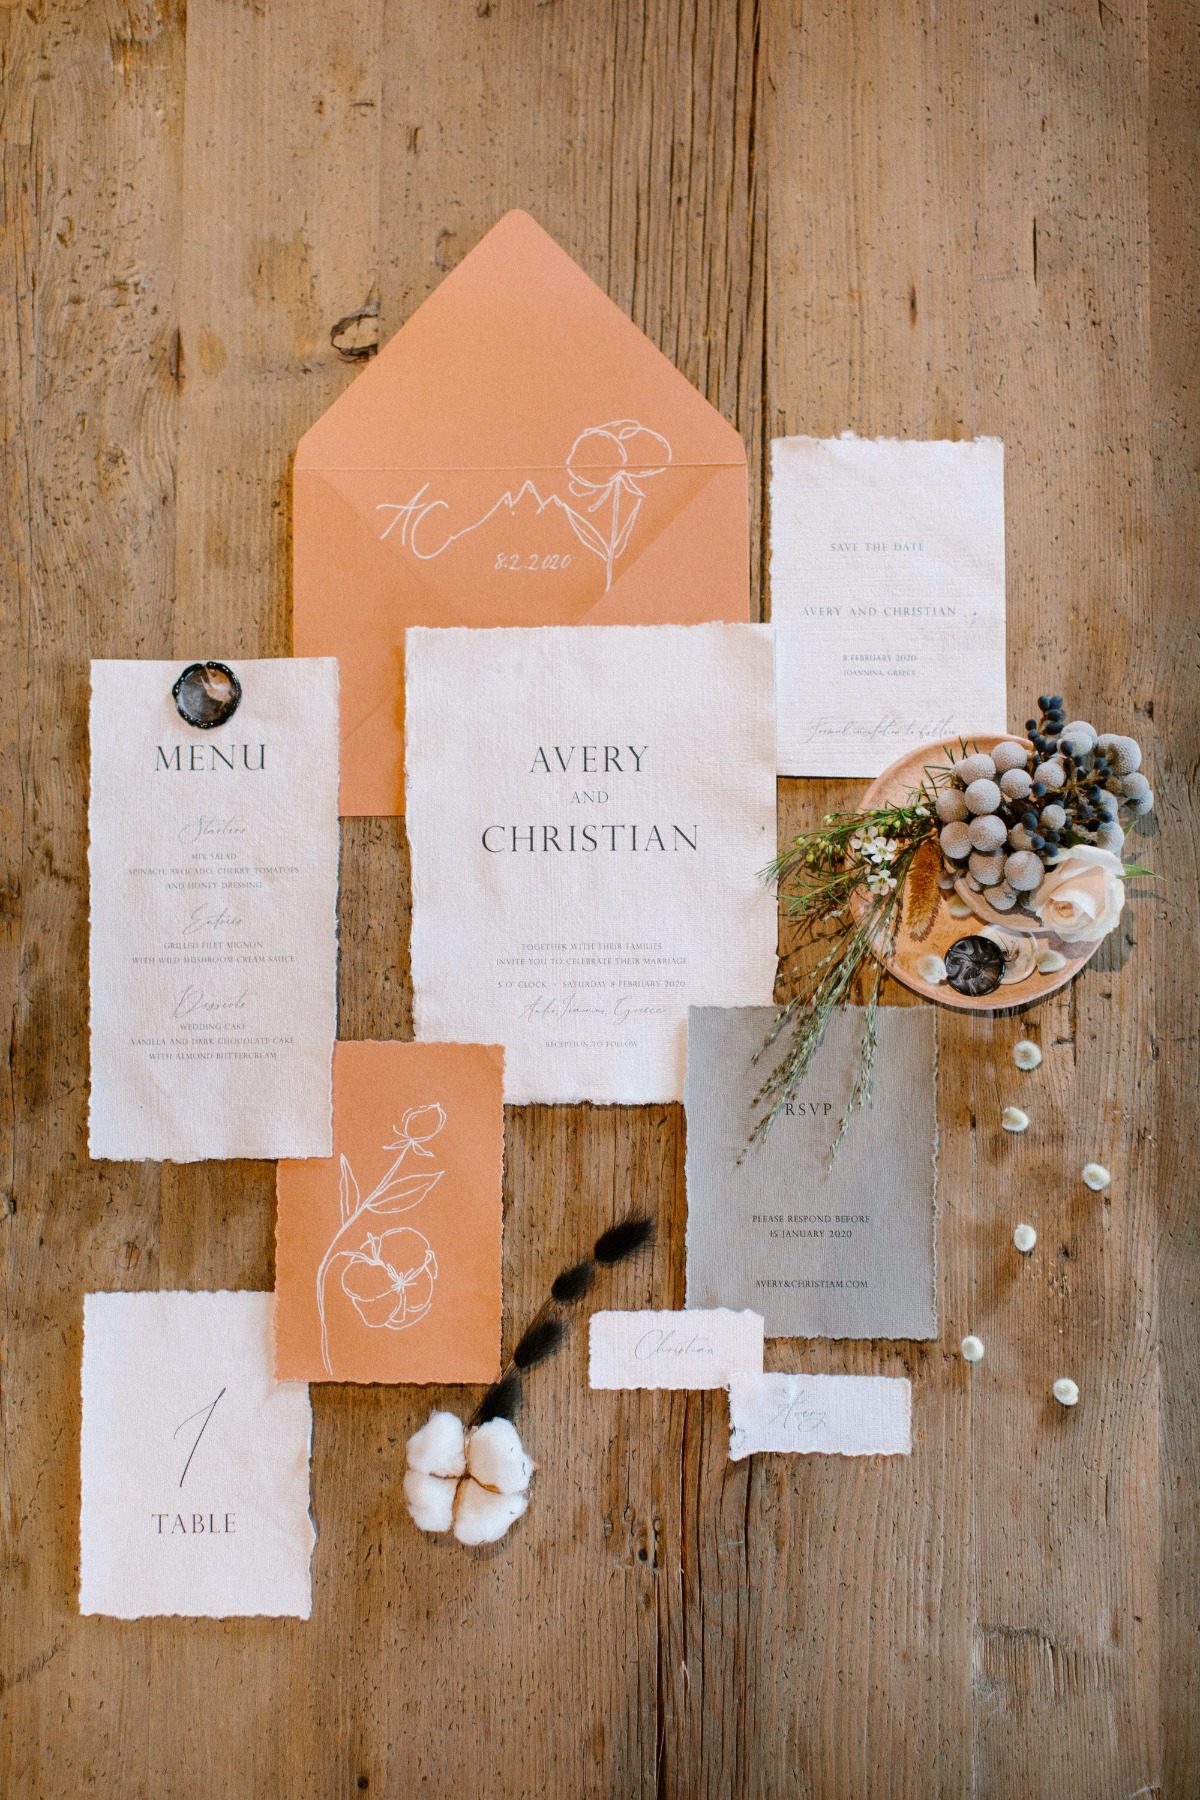 Flat lay styling ideas for wedding invitations